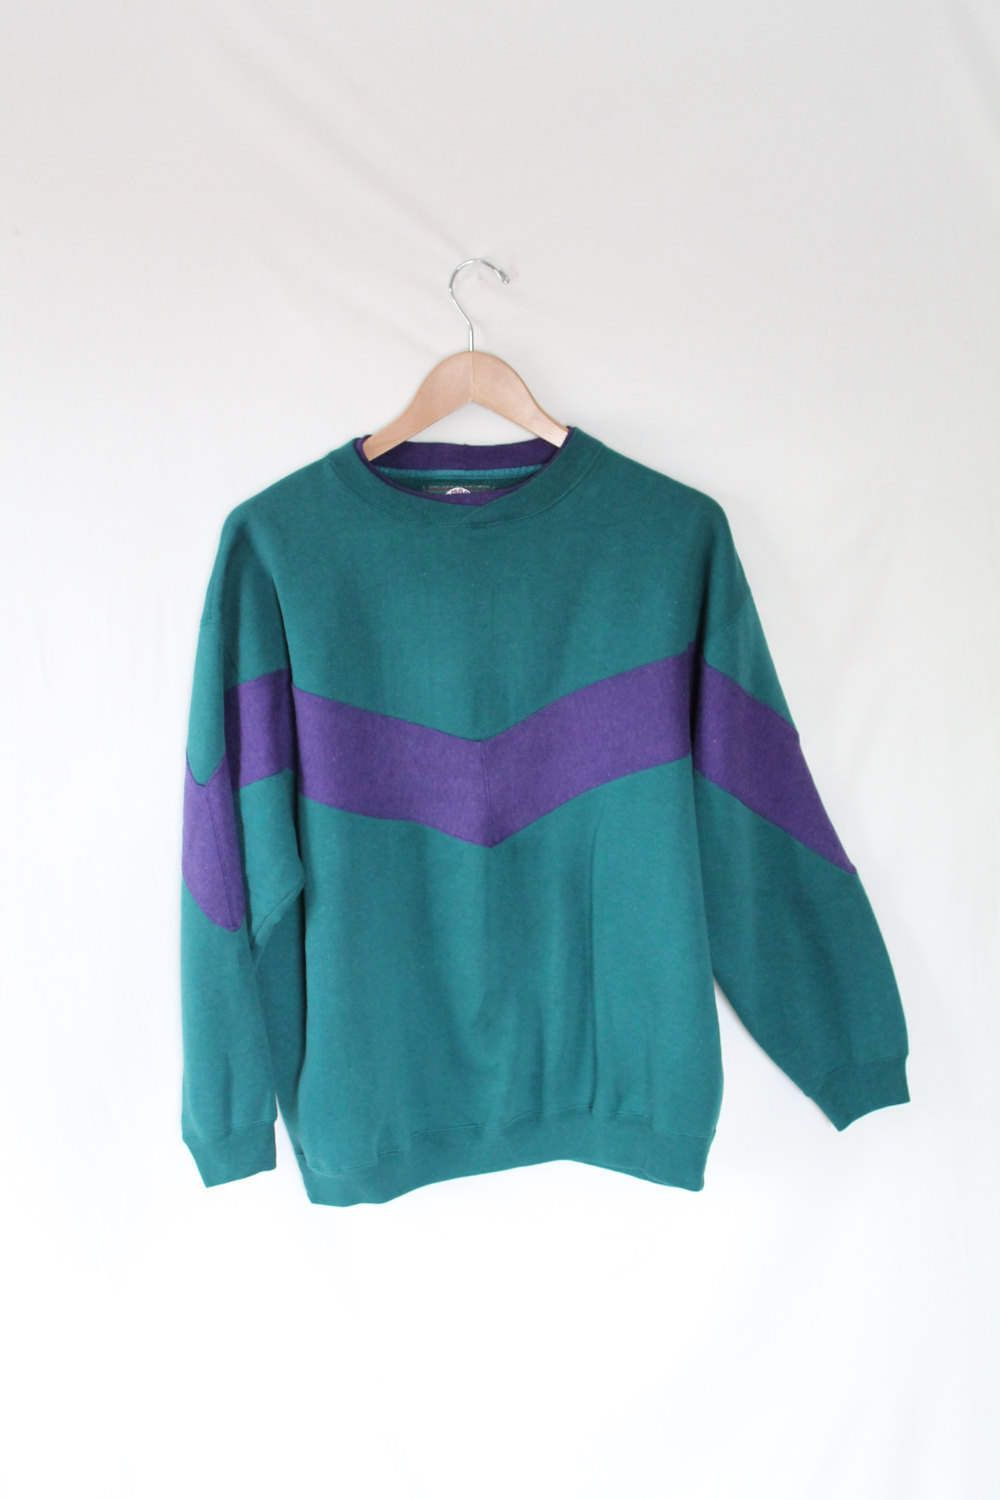 b3ca56b9 90s TIMBERLAND Long Sleeve Polo Sweatshirt // Turquoise Purple Geometric  Retro Color Block // Soft Grunge Mac Demarco Freaks and Geeks by  VegaGenesisVintage ...